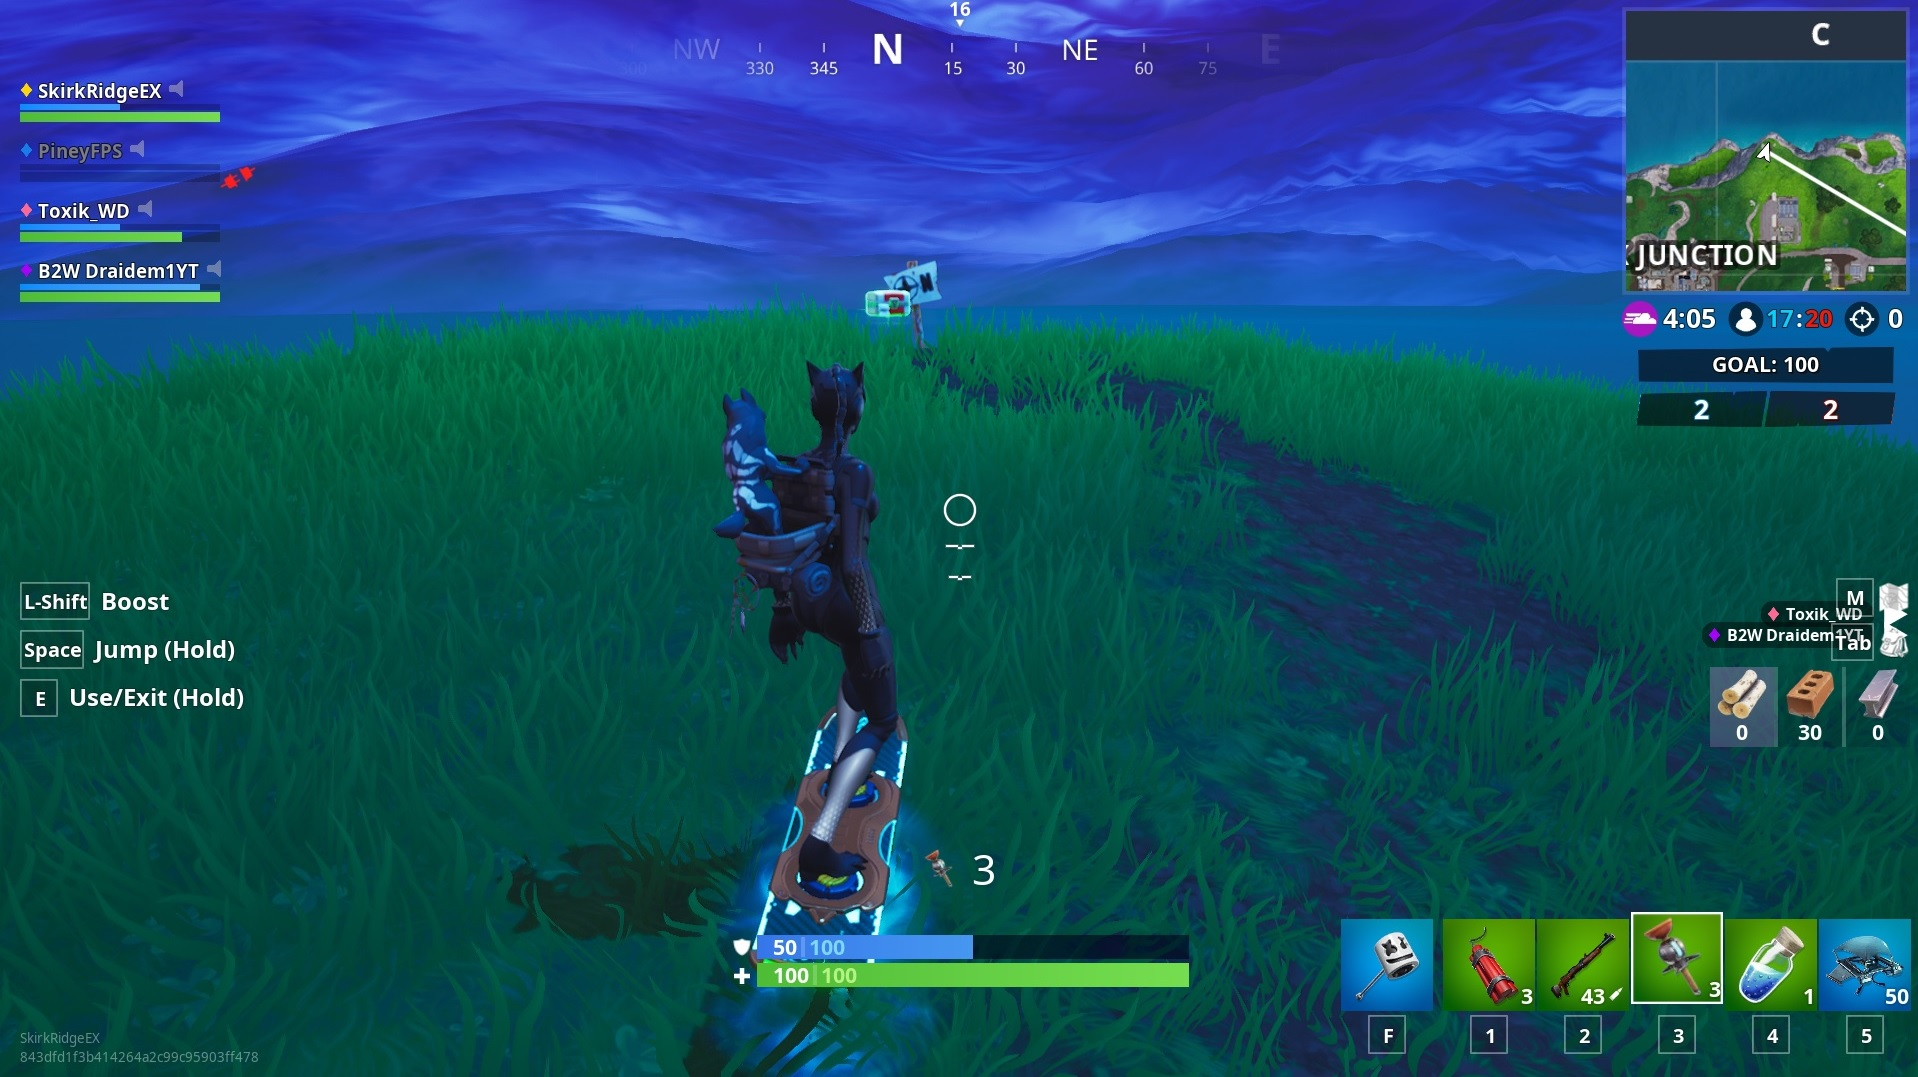 Fortnite furthest north, furthest south, furthest east, and